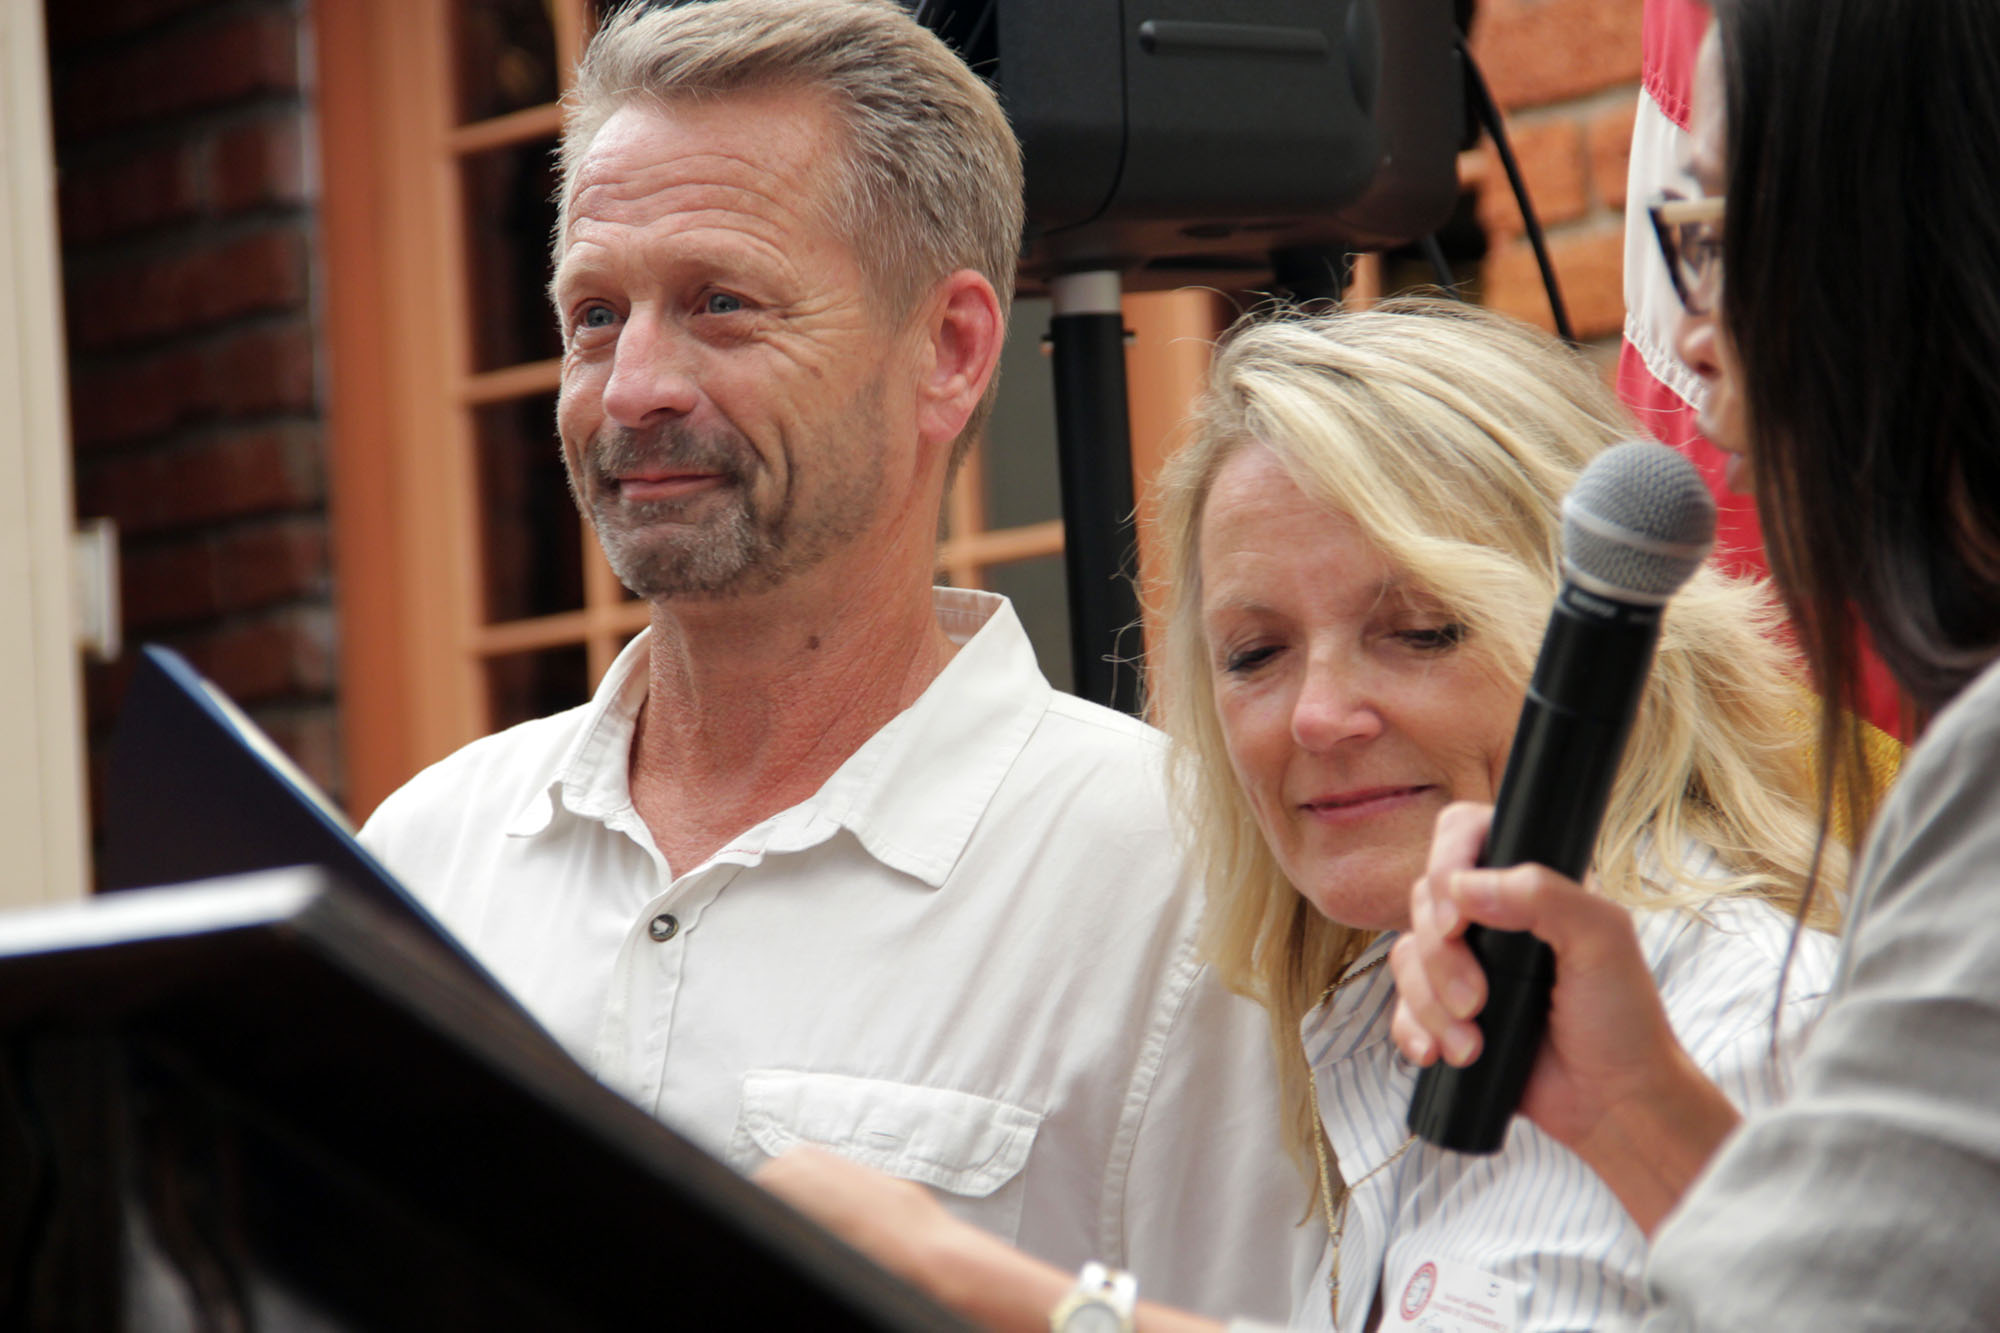 Scott Schmitt's eyes begin to water while he and his wife Dianna Schmitt receive the Man and Woman of the Year Award from the San Juan Capistrano Chamber of Commerce on Thursday, July 11. Photo: Shawn Raymundo